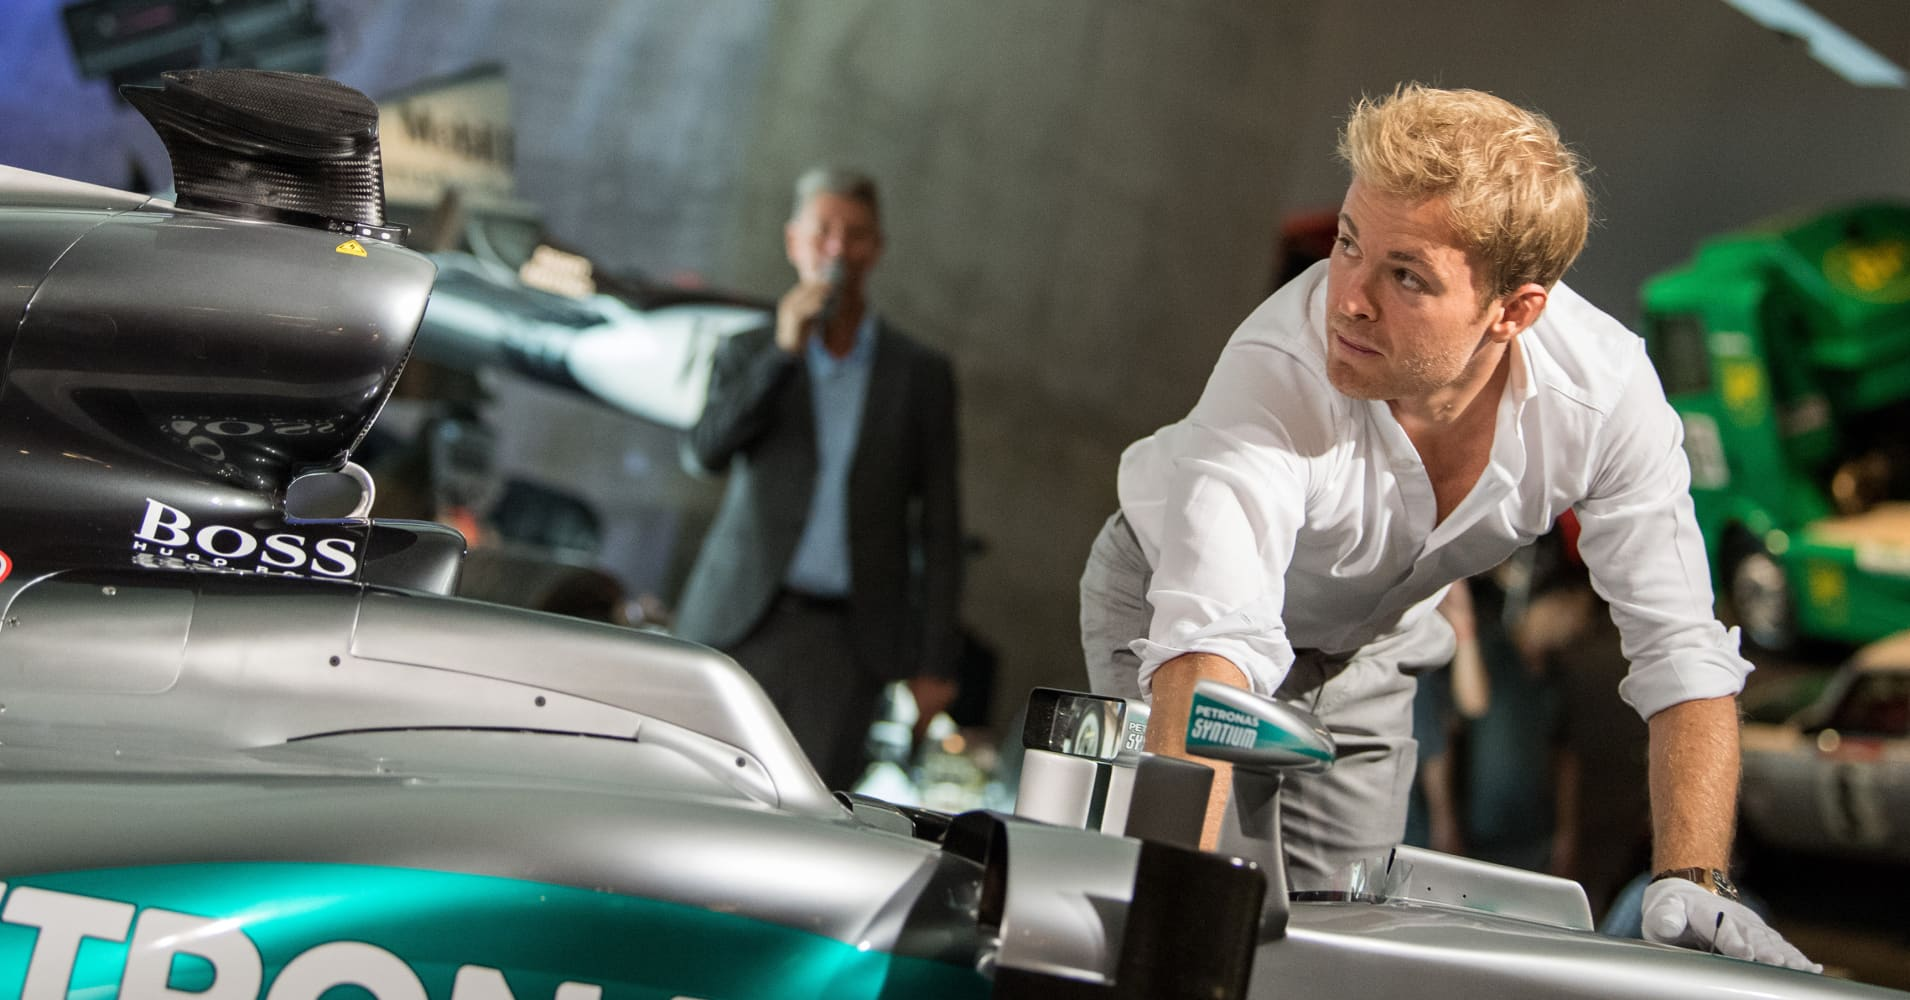 Formula One World champion Nico Rosberg pushes his car during the transfer of his world championship car, a Mercedes F1 W07 hybrid, into the Mercedes-Benz Museum in Stuttgart.